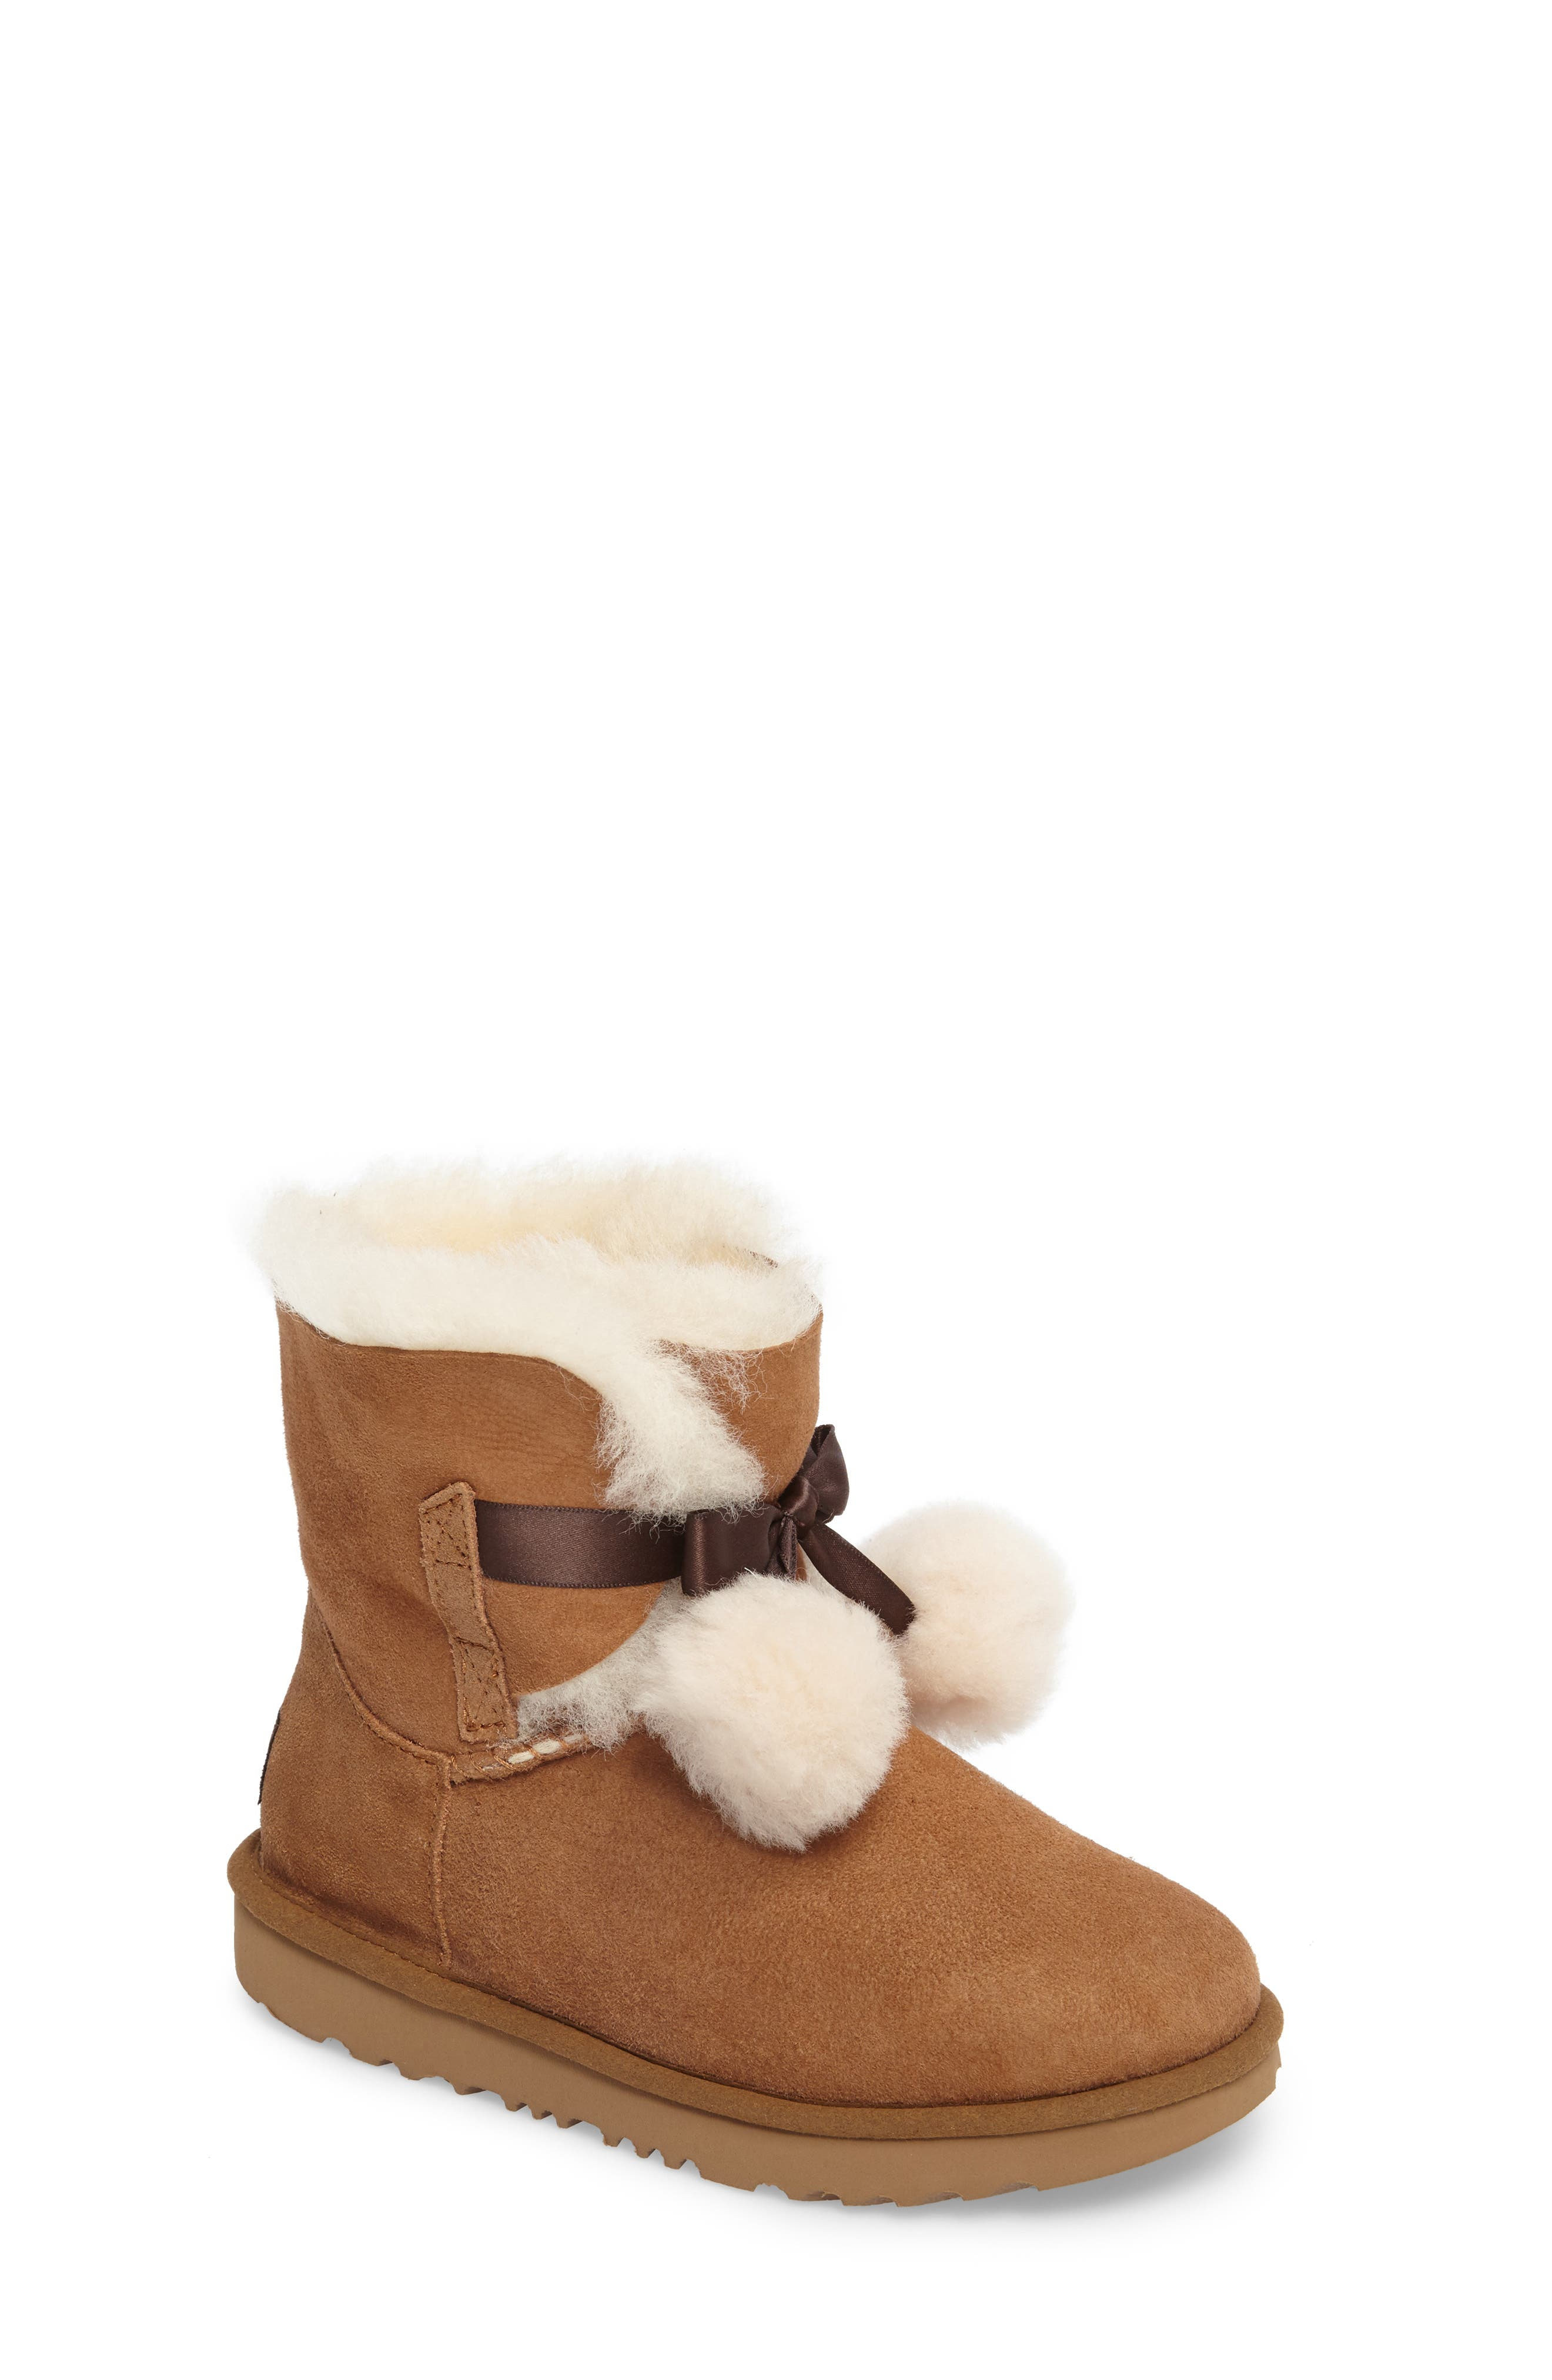 UGG<SUP>®</SUP>, Gita Water-Resistant Genuine Shearling Pom Boot, Main thumbnail 1, color, CHESTNUT